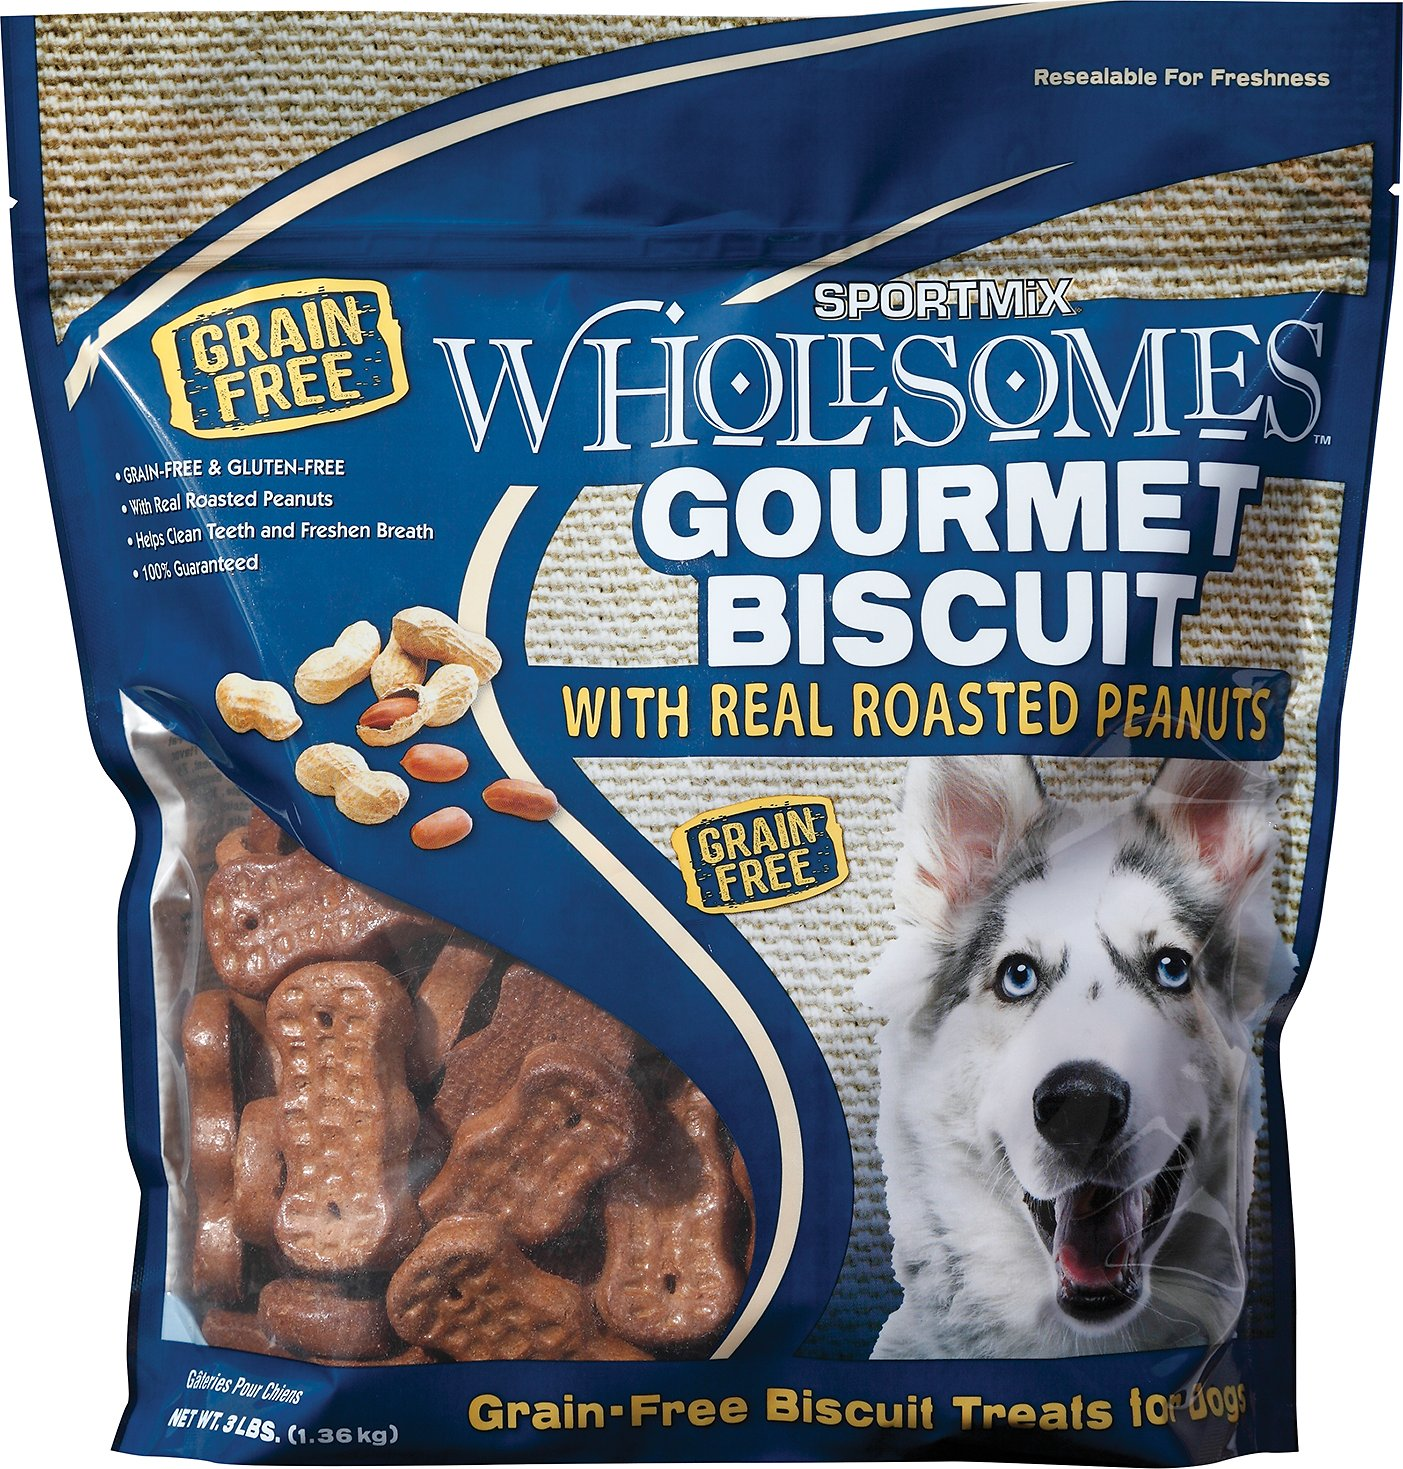 SPORTMiX Wholesomes Grain-Free Premium Gourmet Biscuit with Roasted Peanuts Dog Treats Size: 3-lb bag